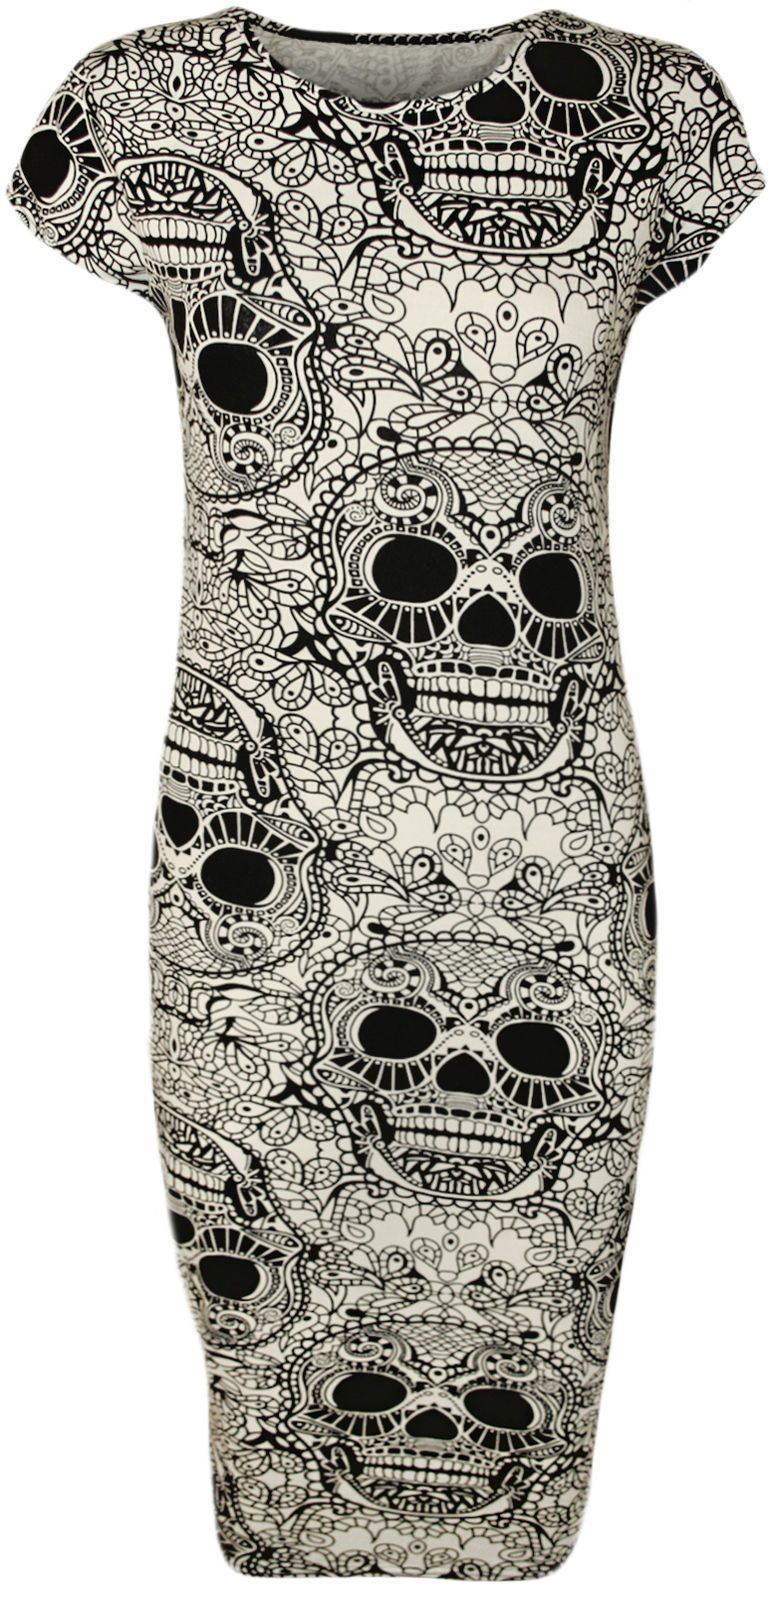 Women/'s Skull Skeleton Bone Print Long Sleeve Ladies Bodycon Short Dress 8-14